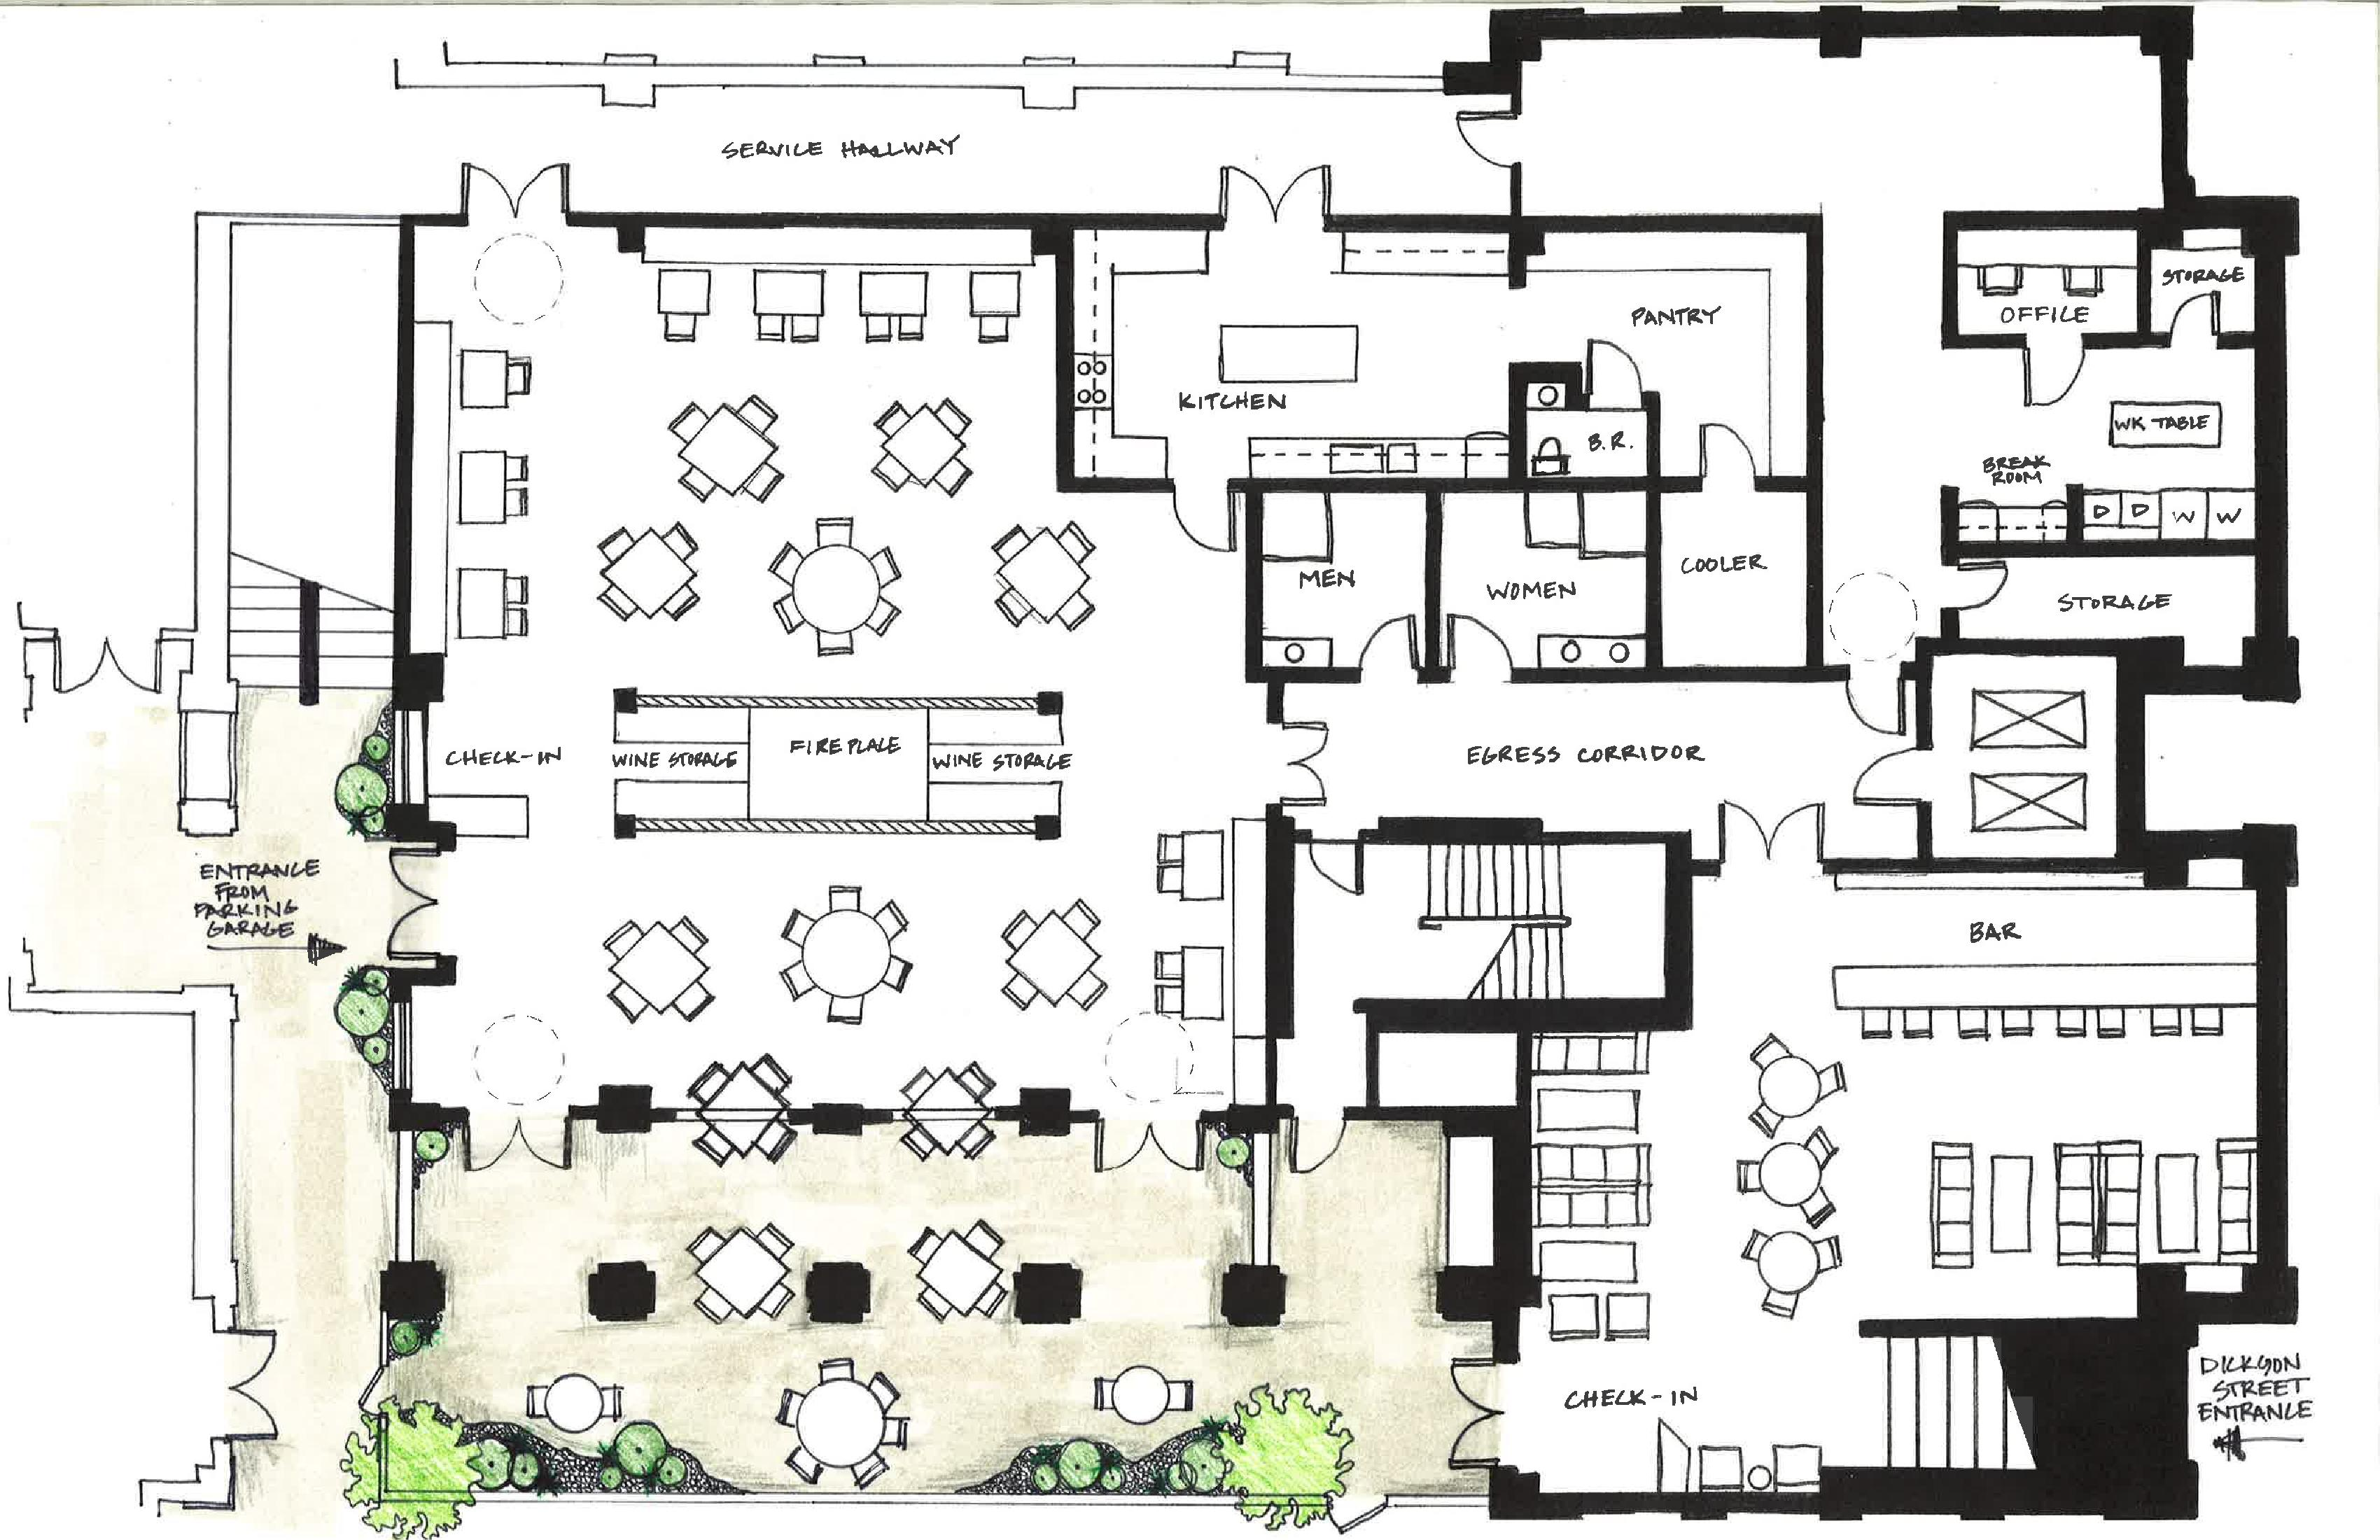 Designing a restaurant floor plan home design and decor Rest house plan